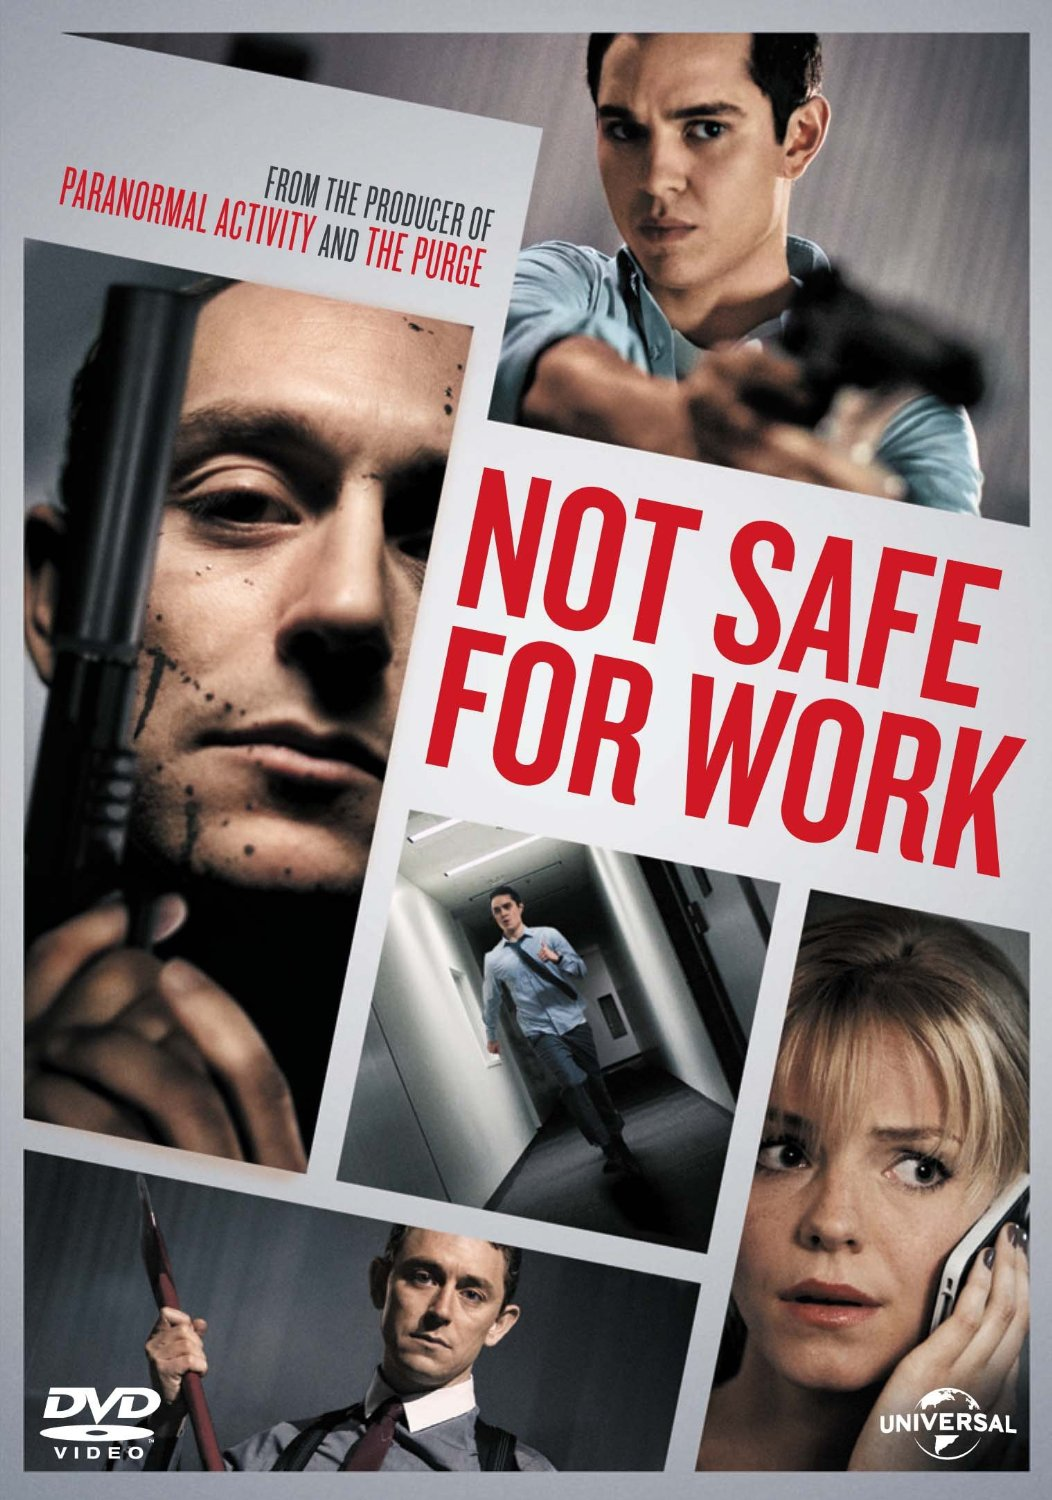 Adam Mason ,Eloise Mumford , JJ Feild ,Joe Johnston,Max Minghella, movie download , movie free download, movie free download with direct link ,Not Safe for Work (2014), Not Safe for Work (2014) free download ,Simon Boyes,دانلود رایگان فیلم,دانلود فیلم,دانلود فیلم Not Safe for Work 2014,دانلود فیلم با لینک مستقیم,دانلود فیلم رایگان,